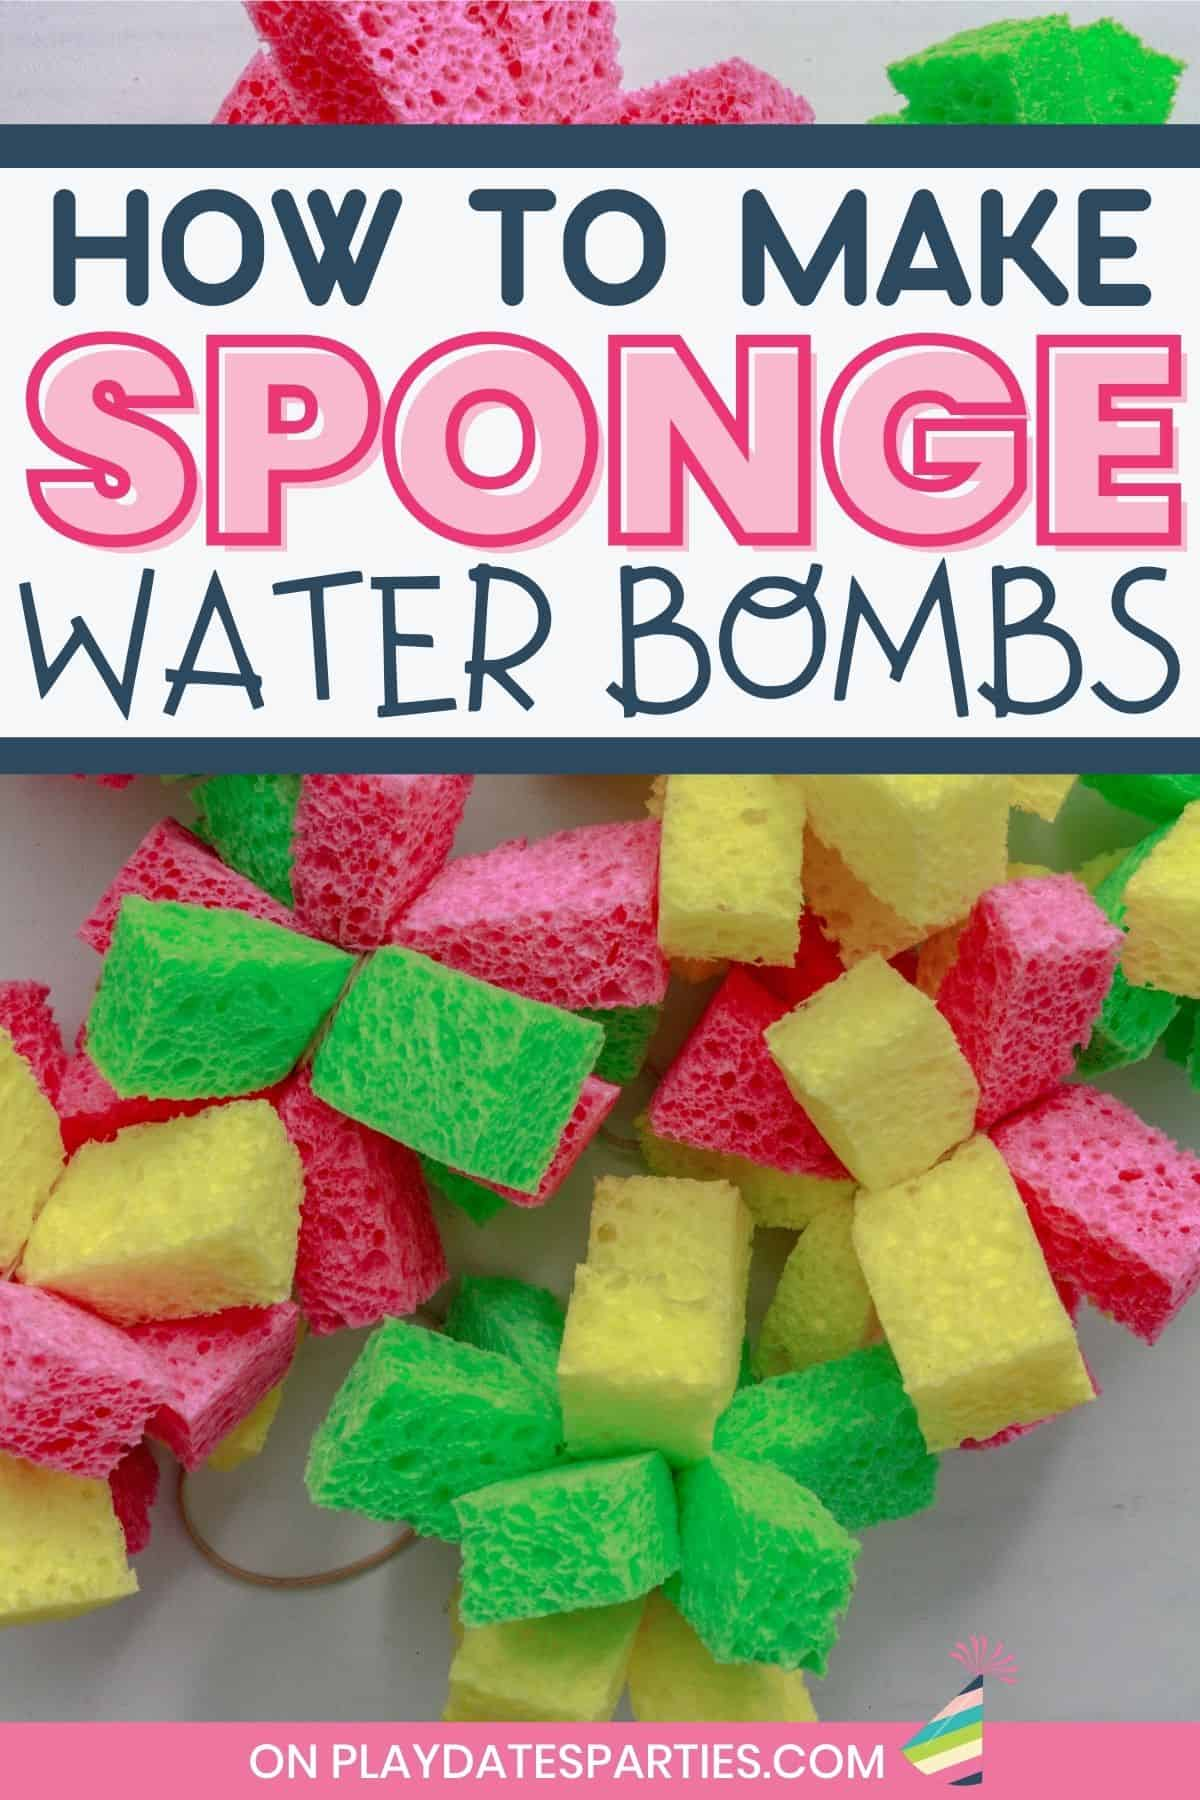 pile of sponge bombs on a table with a text overlay how to make sponge water bombs